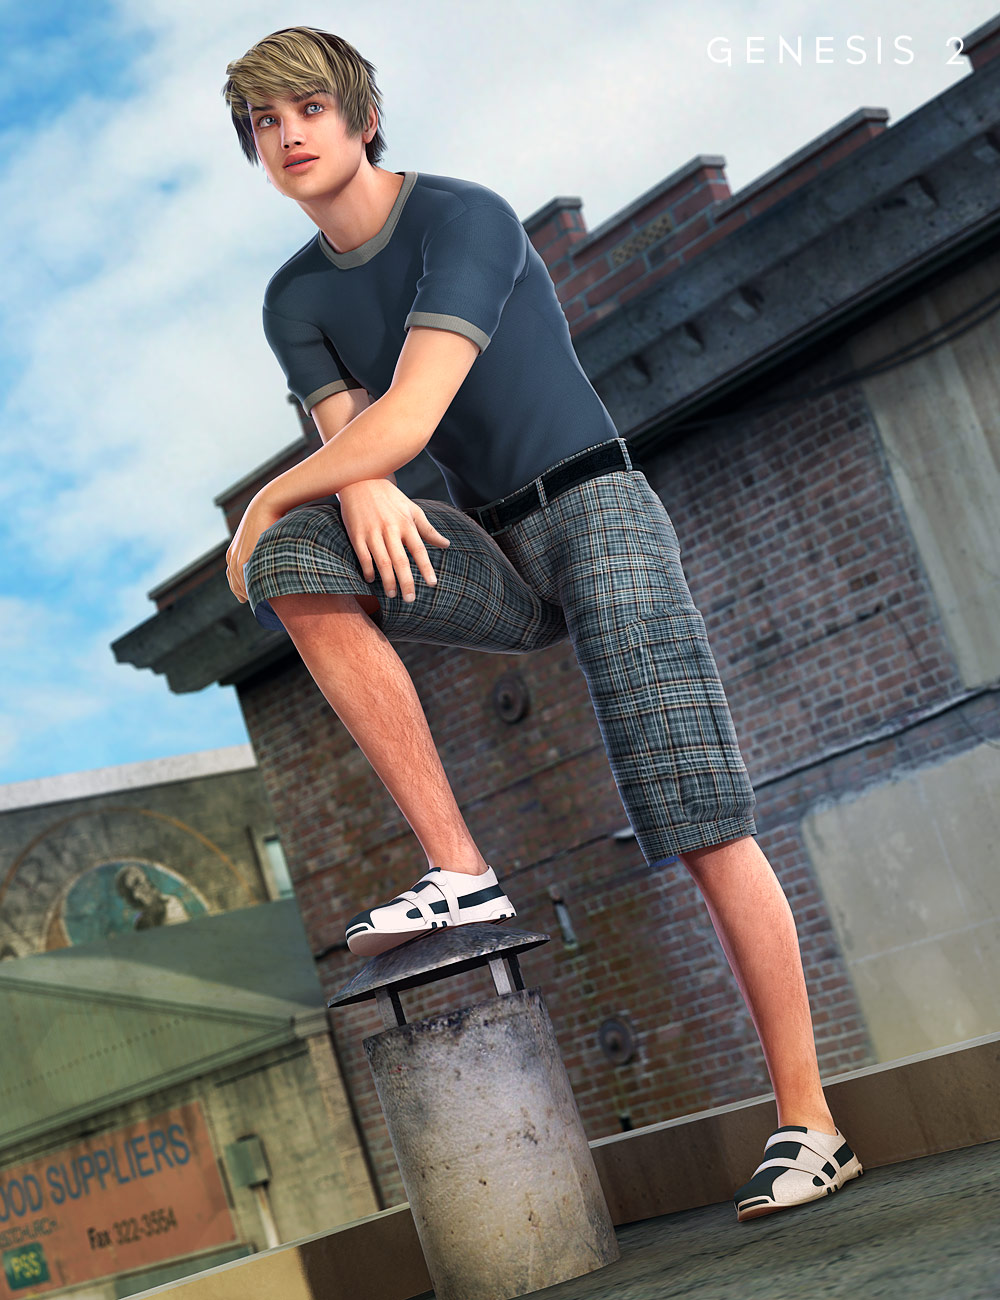 Parkour Wear for Genesis 2 Male(s) by: SarsaXena, 3D Models by Daz 3D